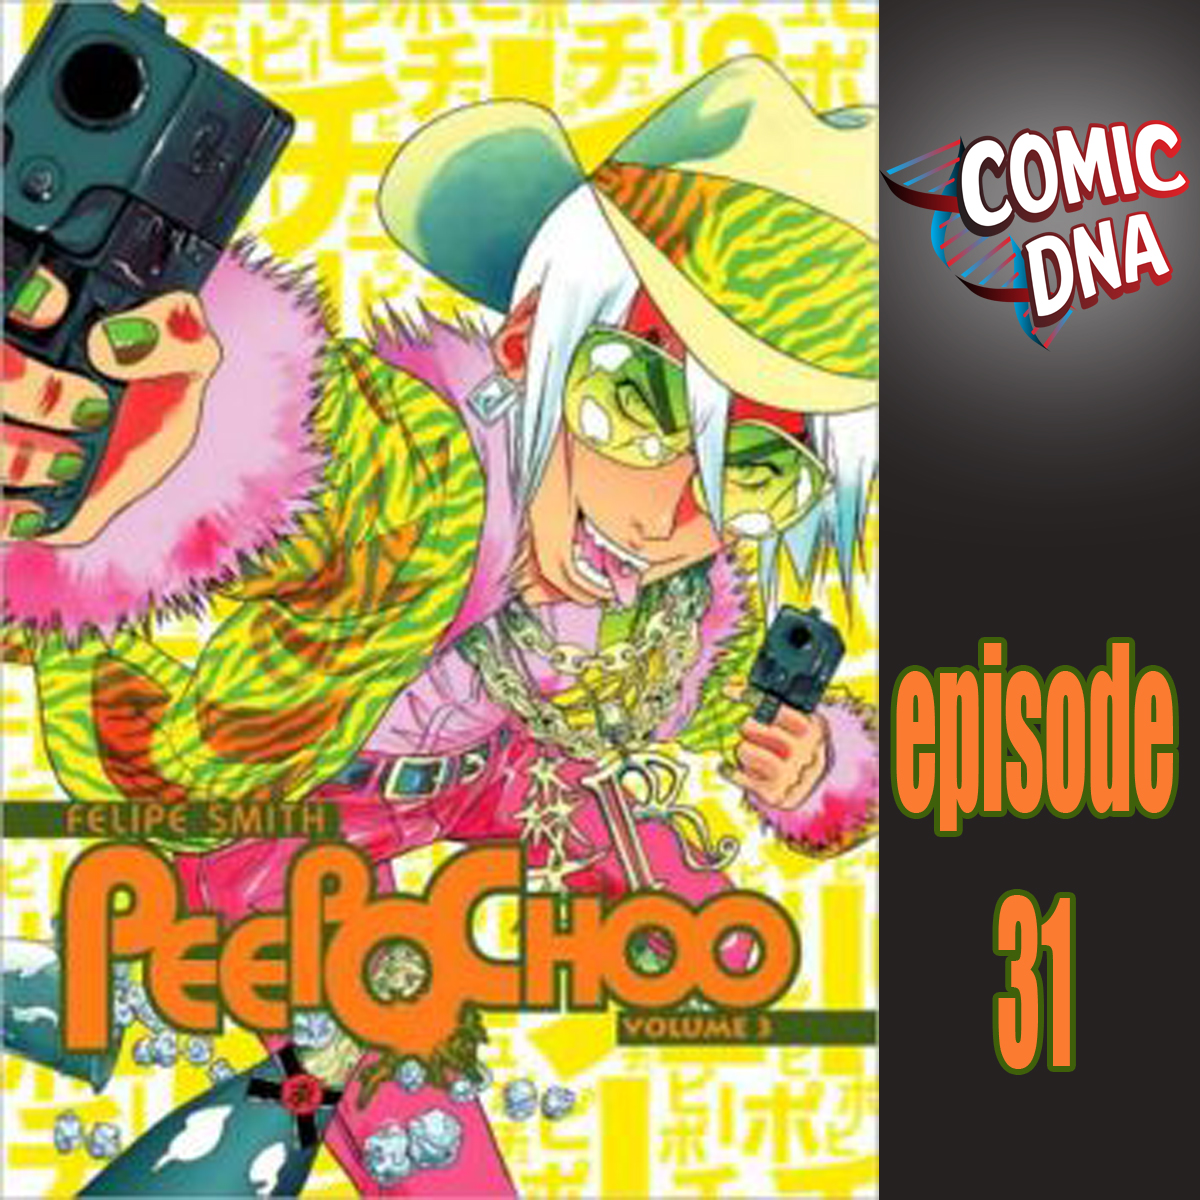 Episode 31 - Peepo Choo 3